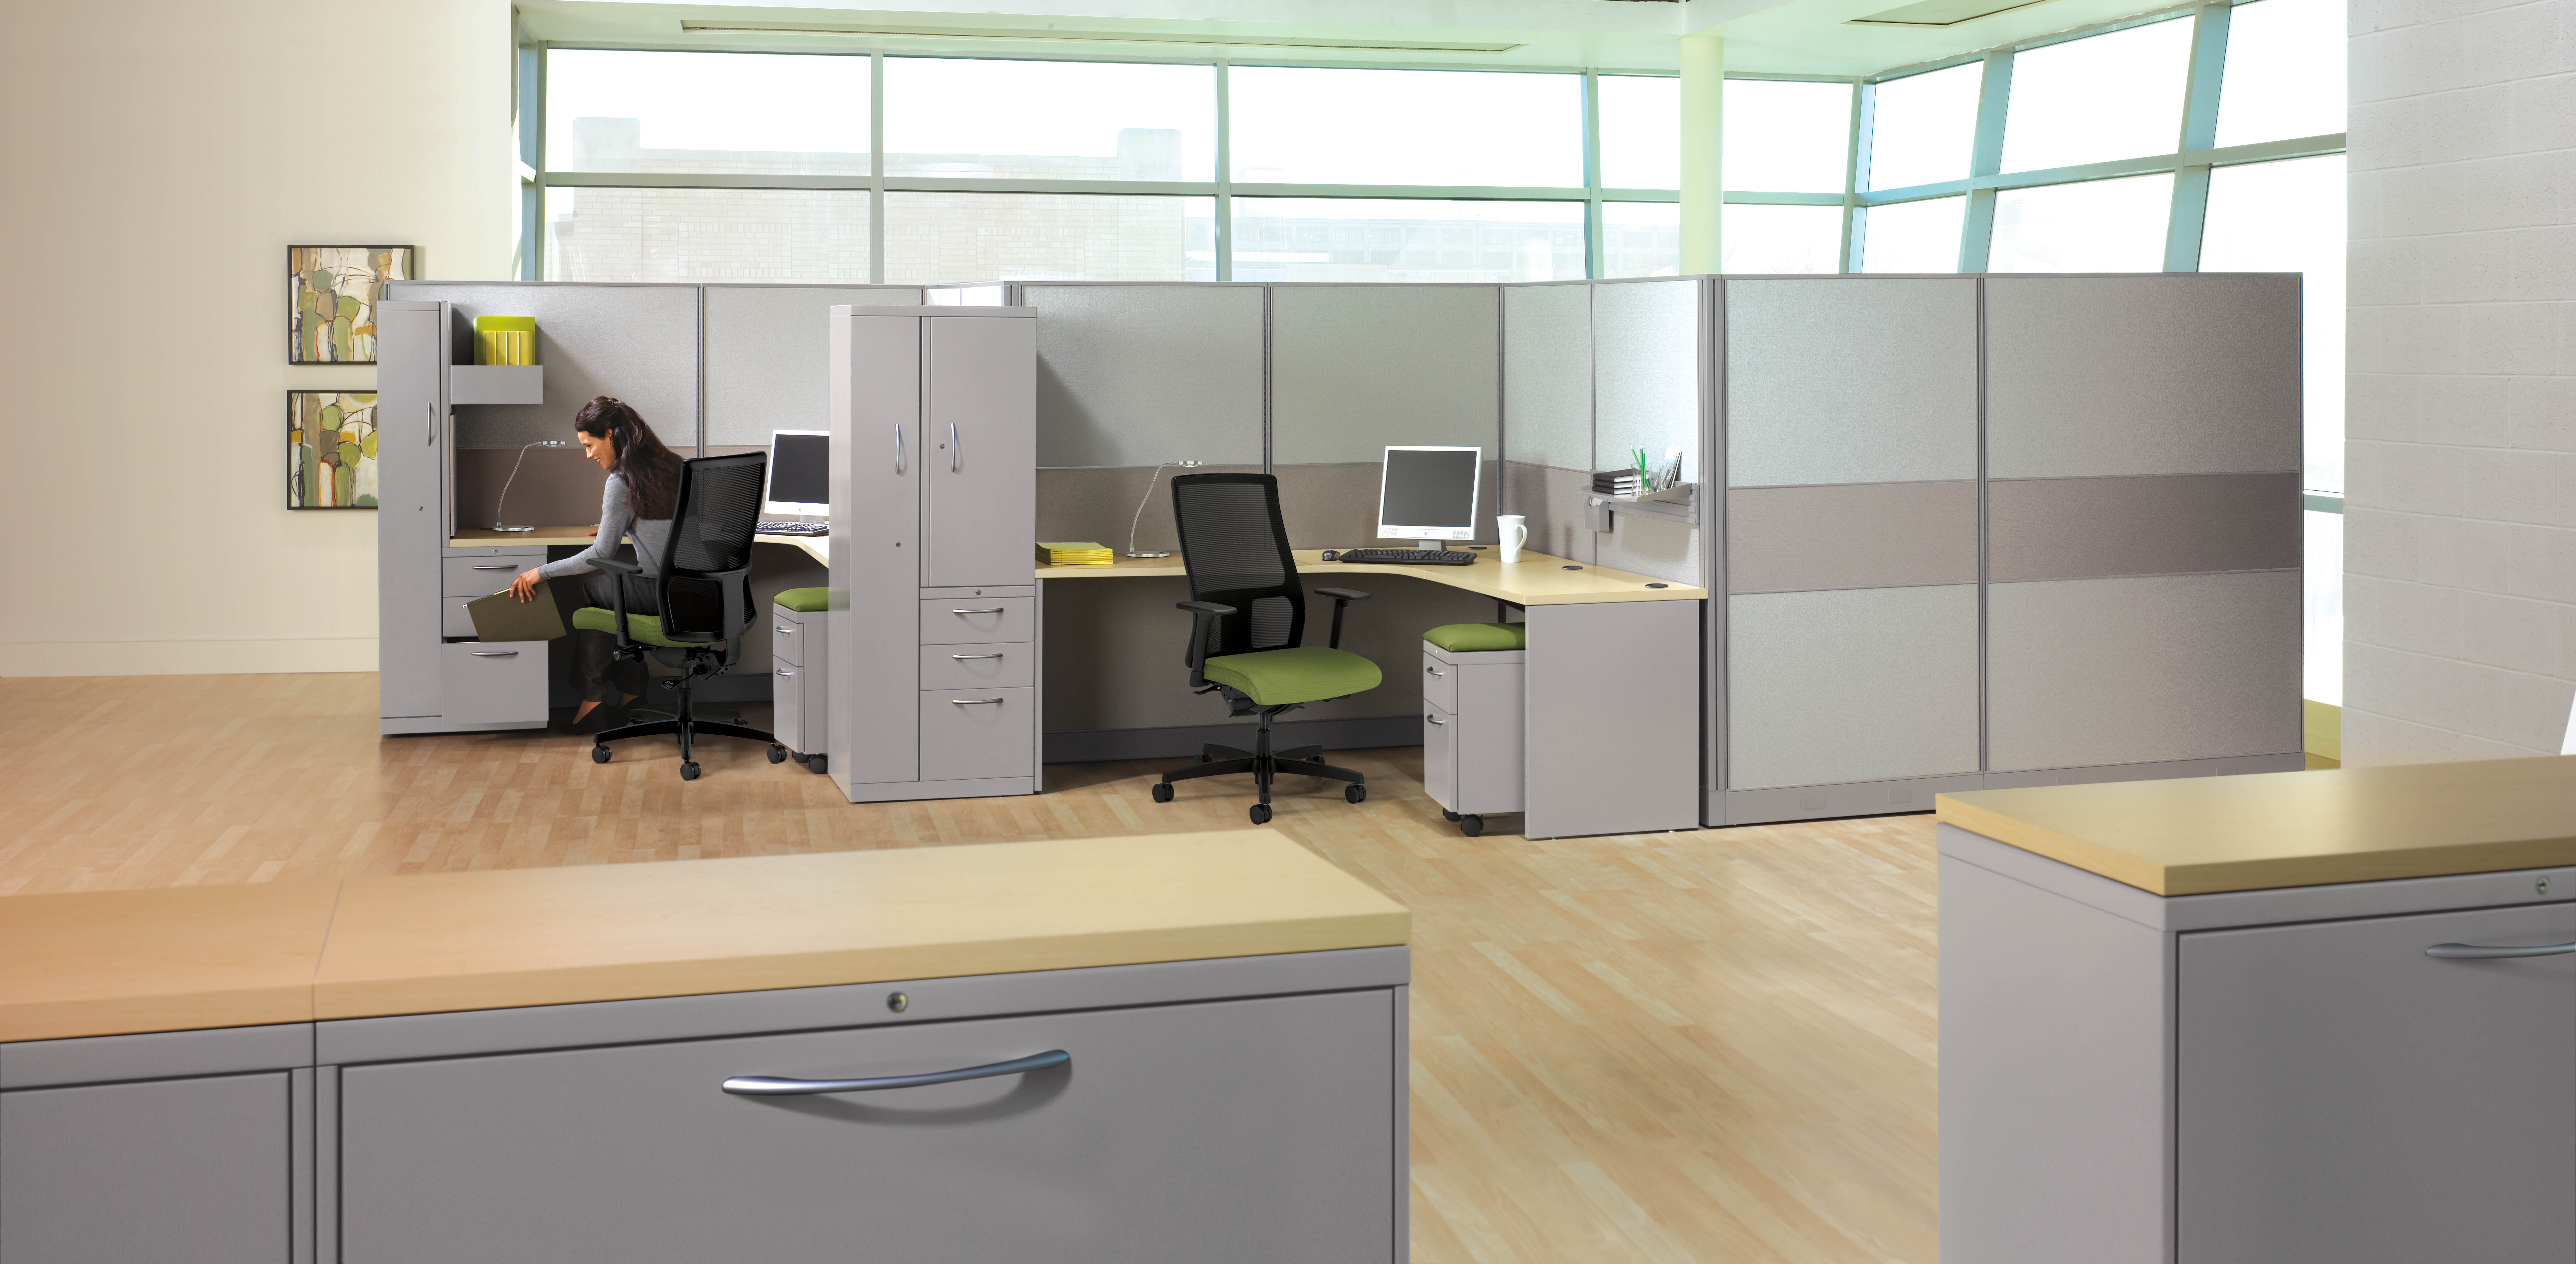 CMS Office Furniture Install Manage